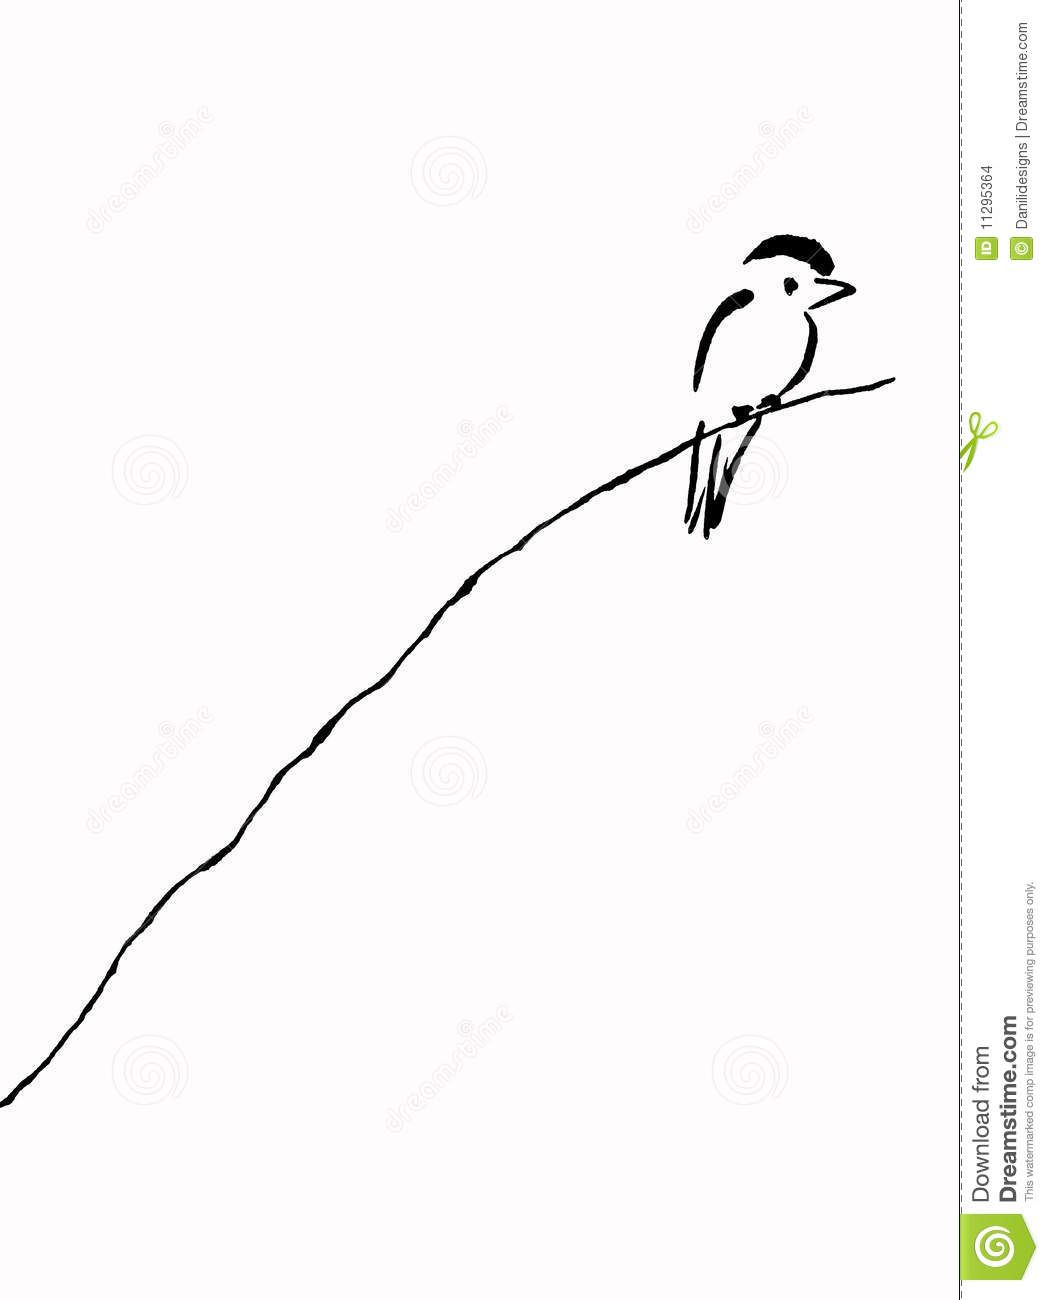 Simple Bird Drawing Google Search Simple Bird Drawing Simple Line Drawings Bird Drawings